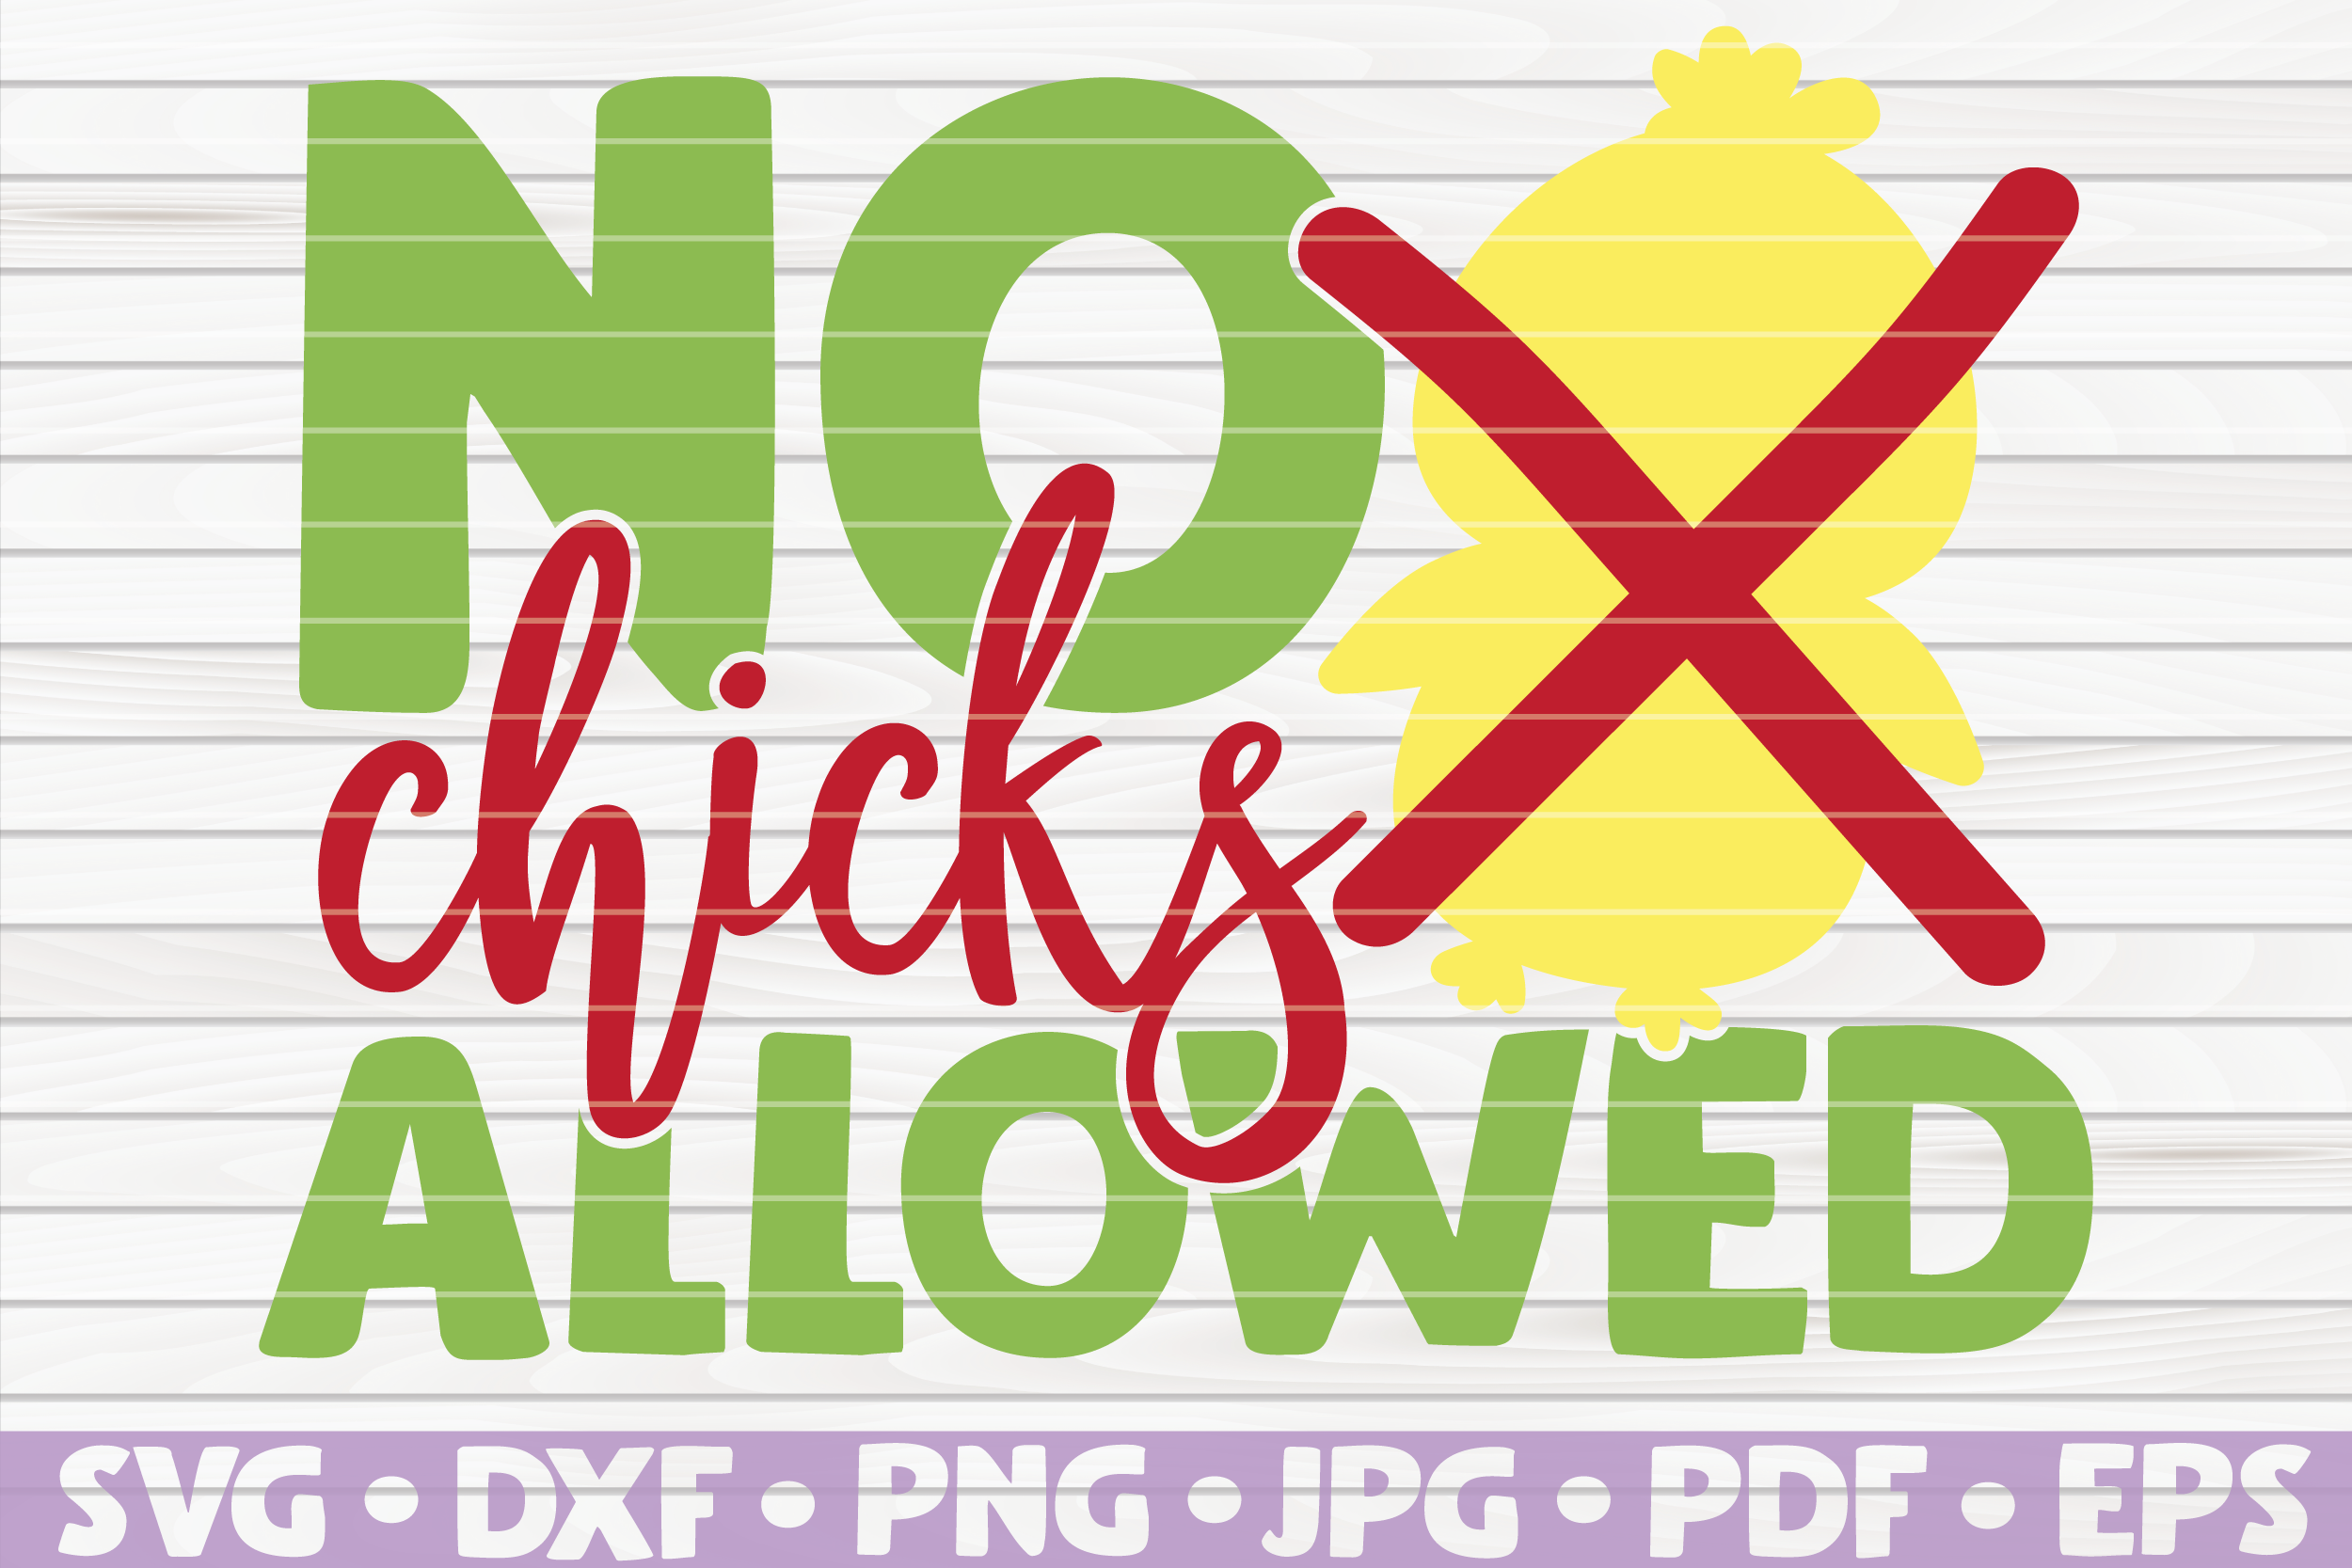 No Chicks Allowed Cute Easter Vector Graphic By Mihaibadea95